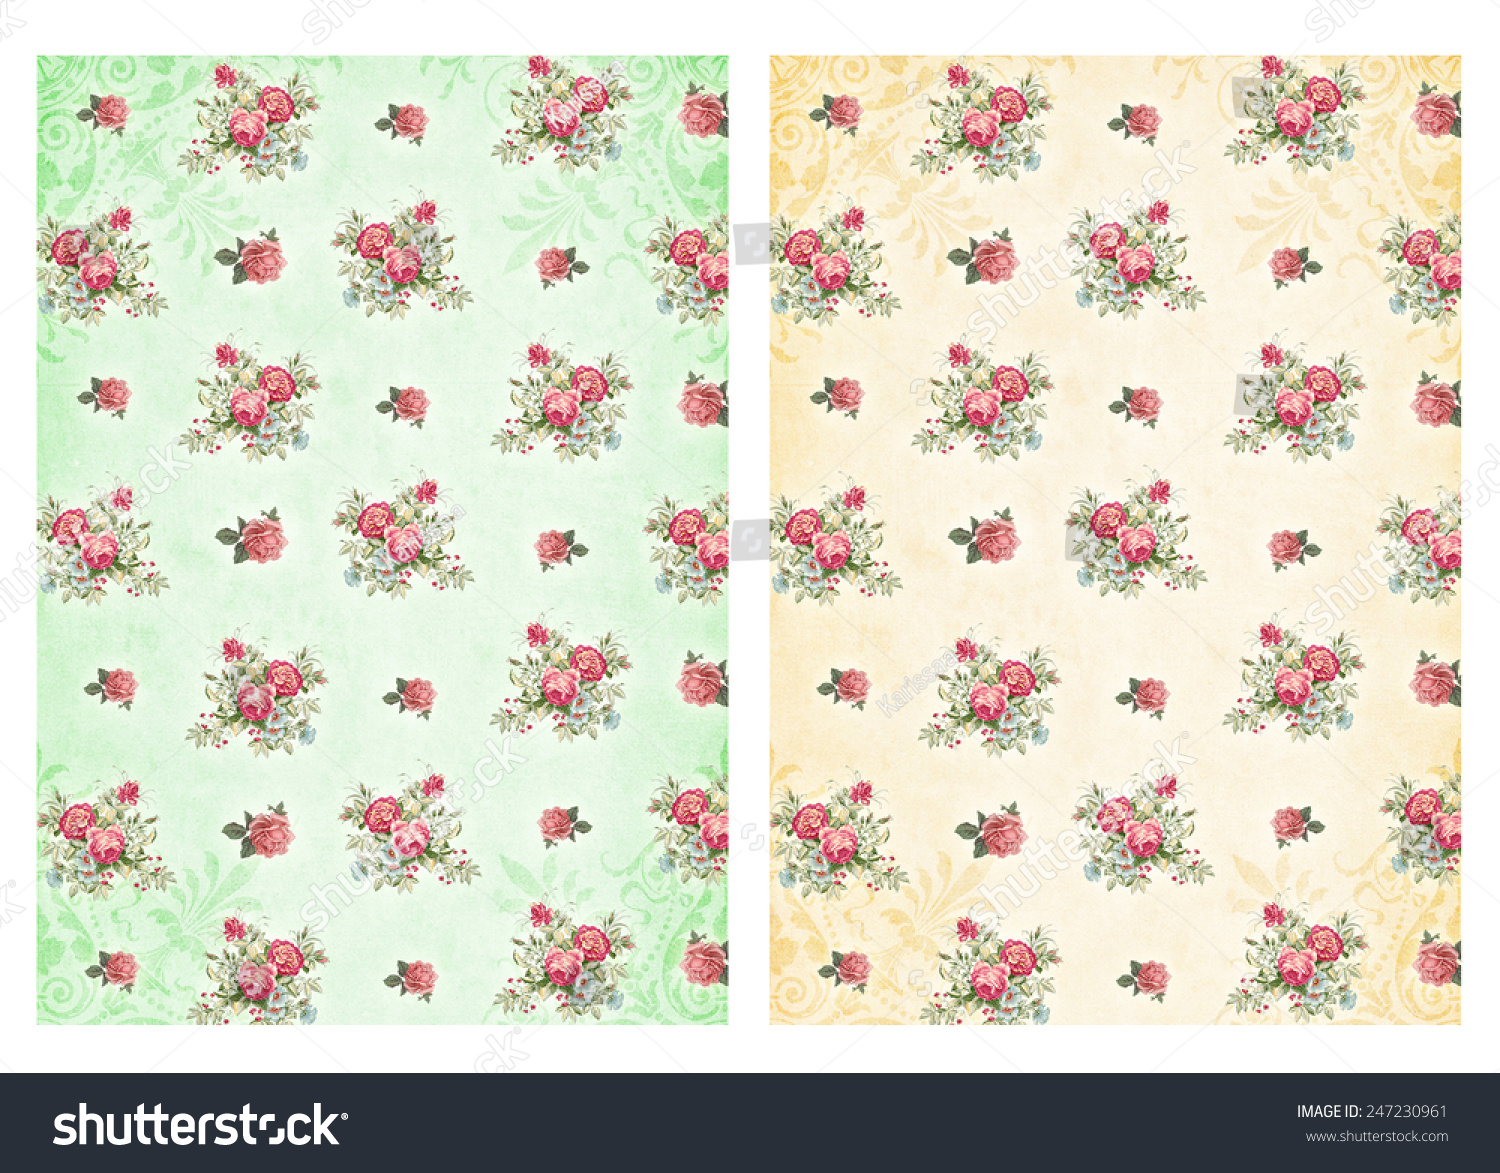 Shabby Chic Backgrounds With Roses